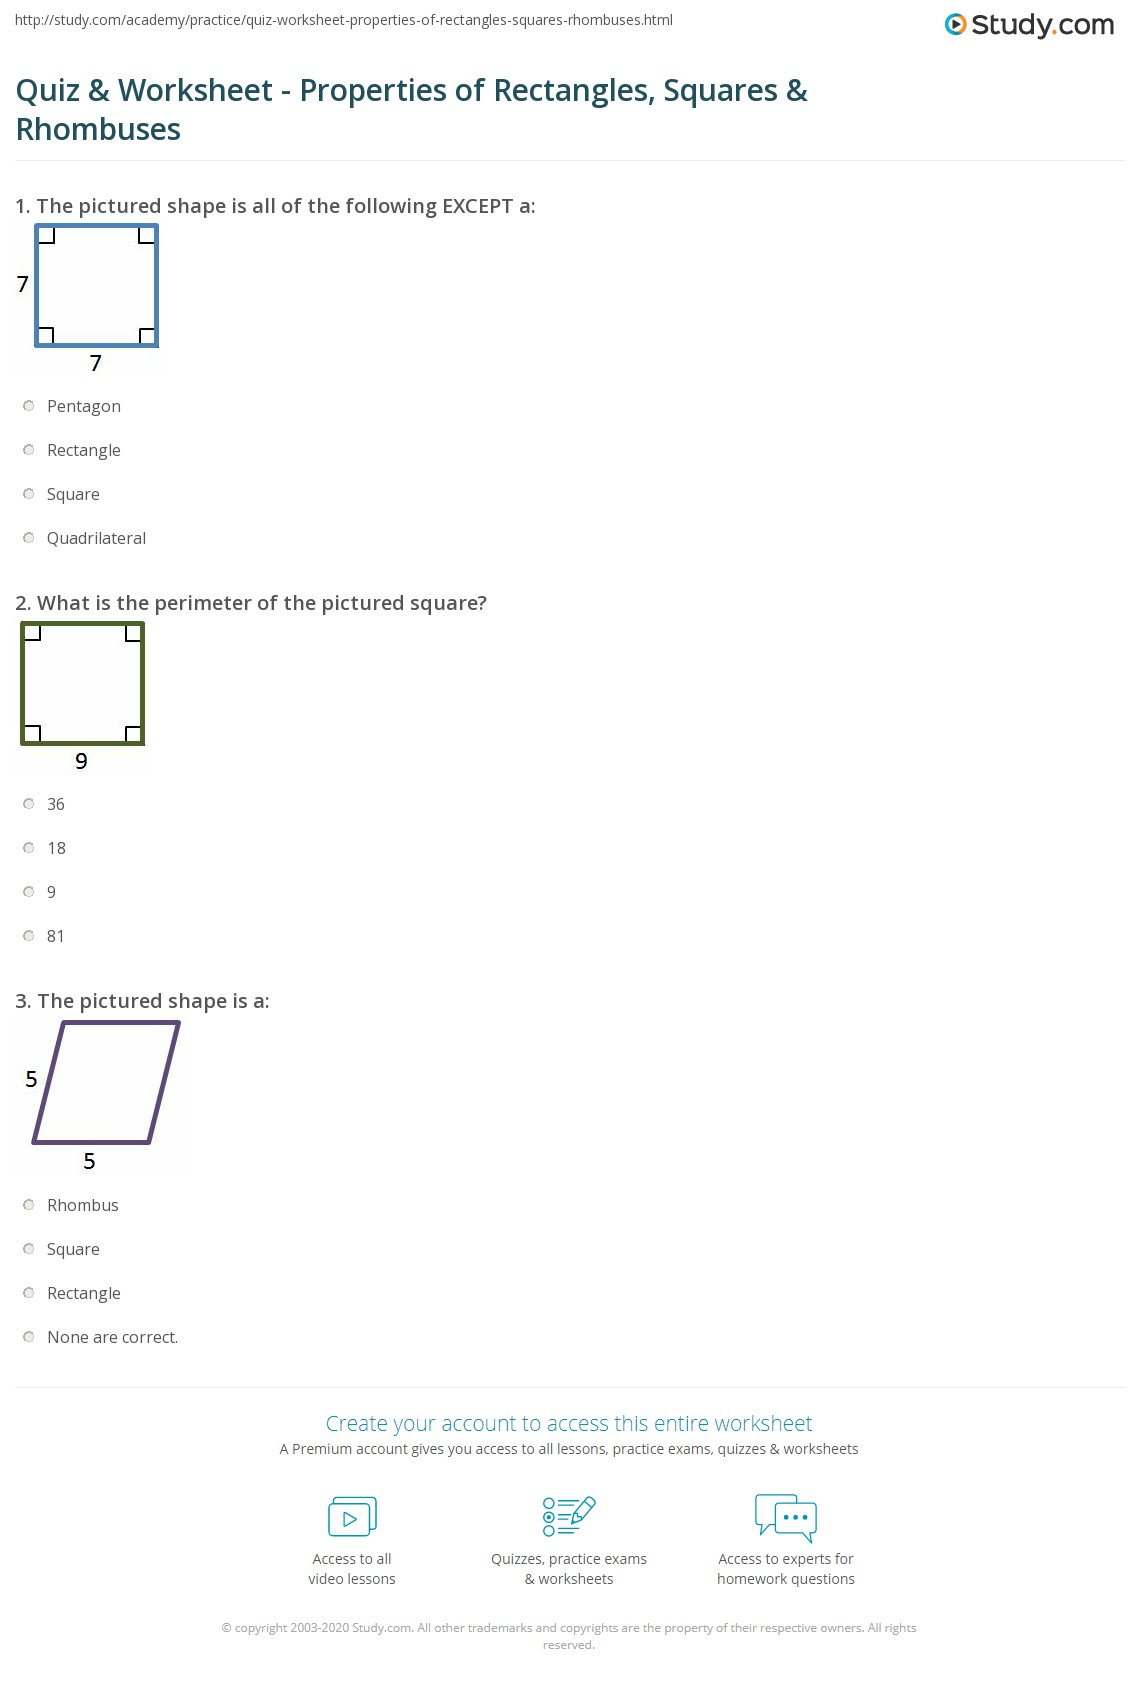 Quiz Worksheet Properties Of Rectangles Squares Rhombuses